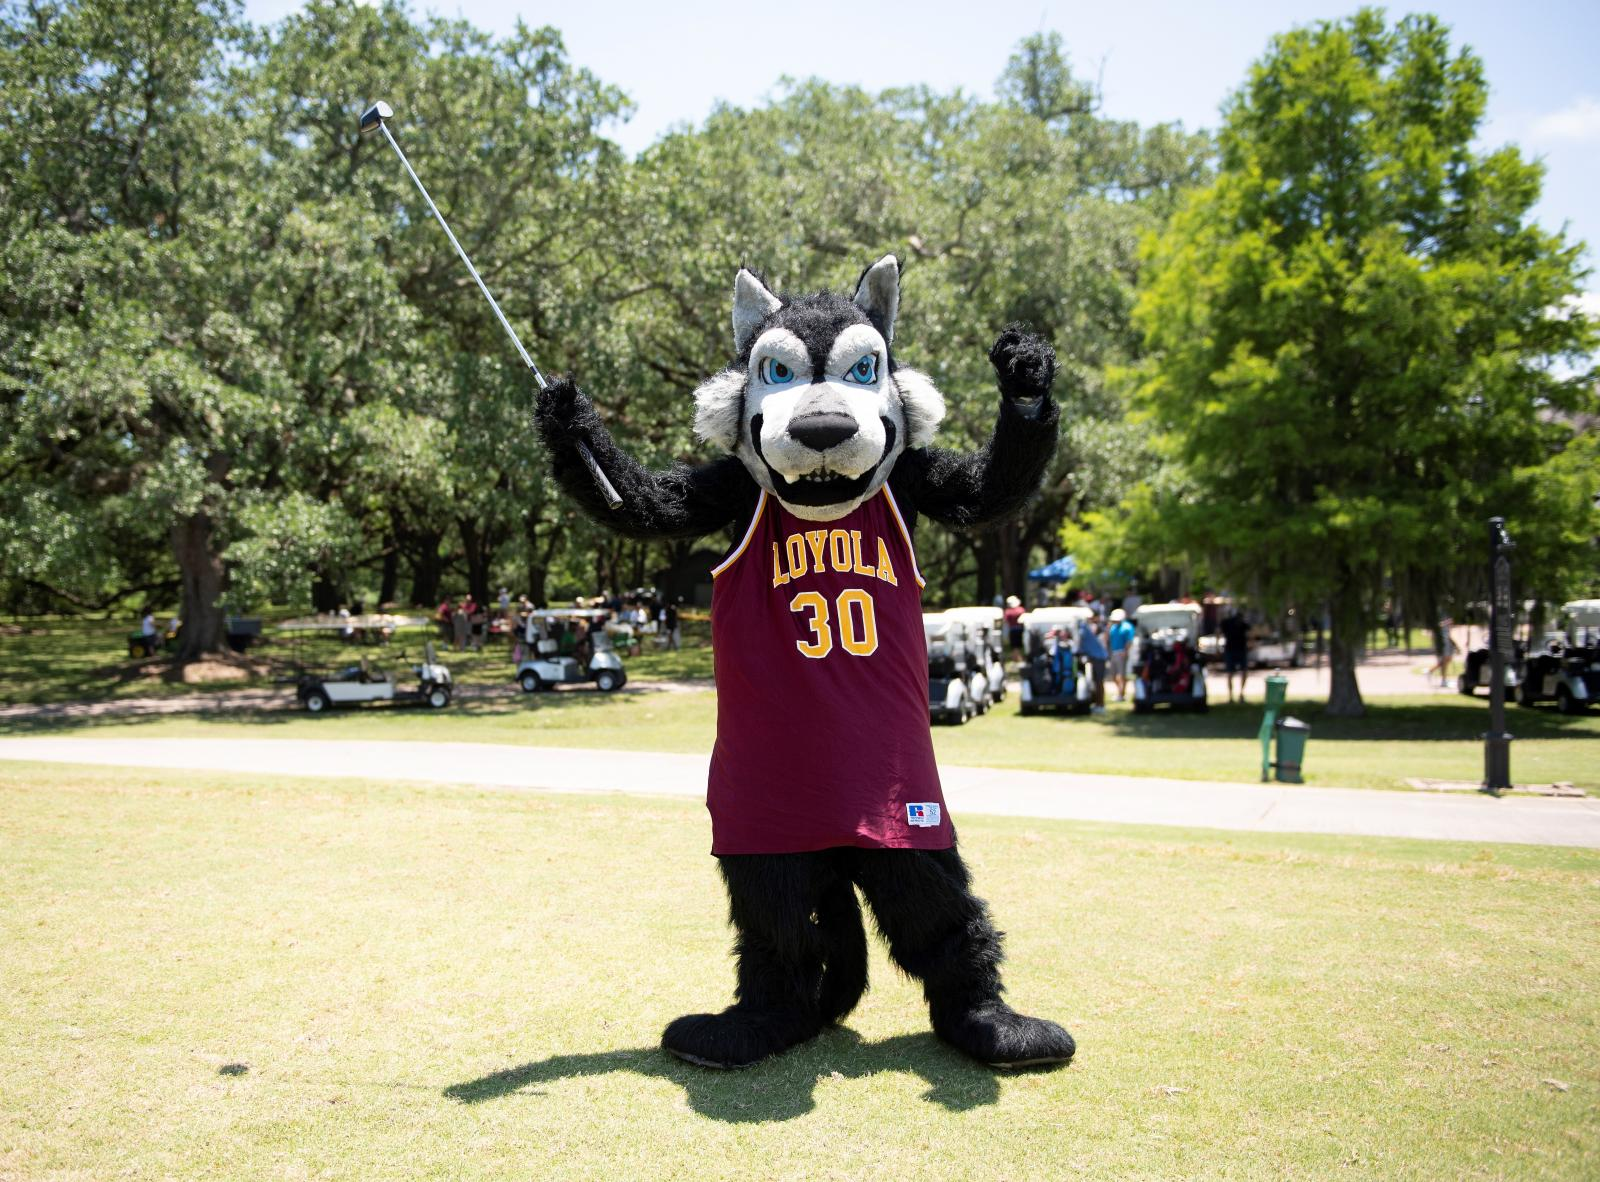 Photo of Loyola mascot playing golf